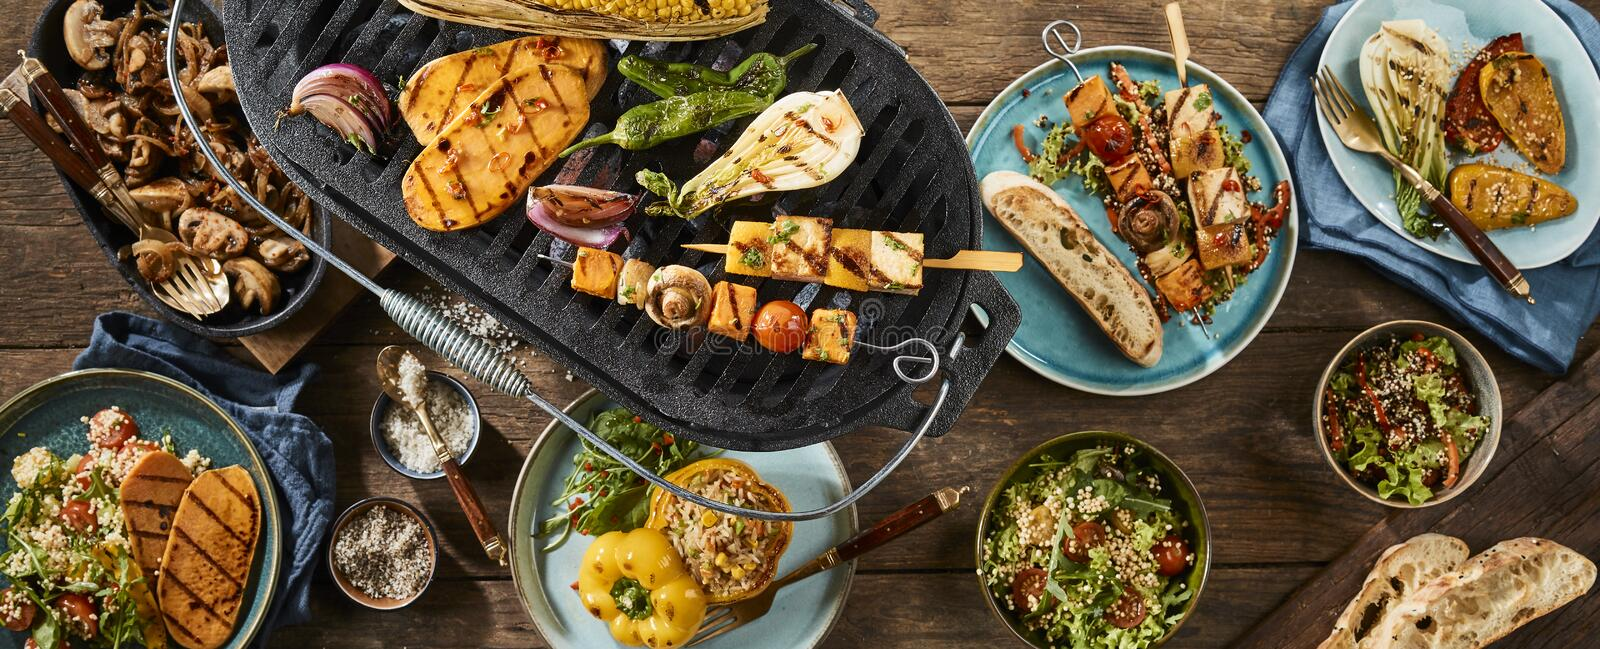 Vegetarian barbecue grilled dishes on timber table royalty free stock photo